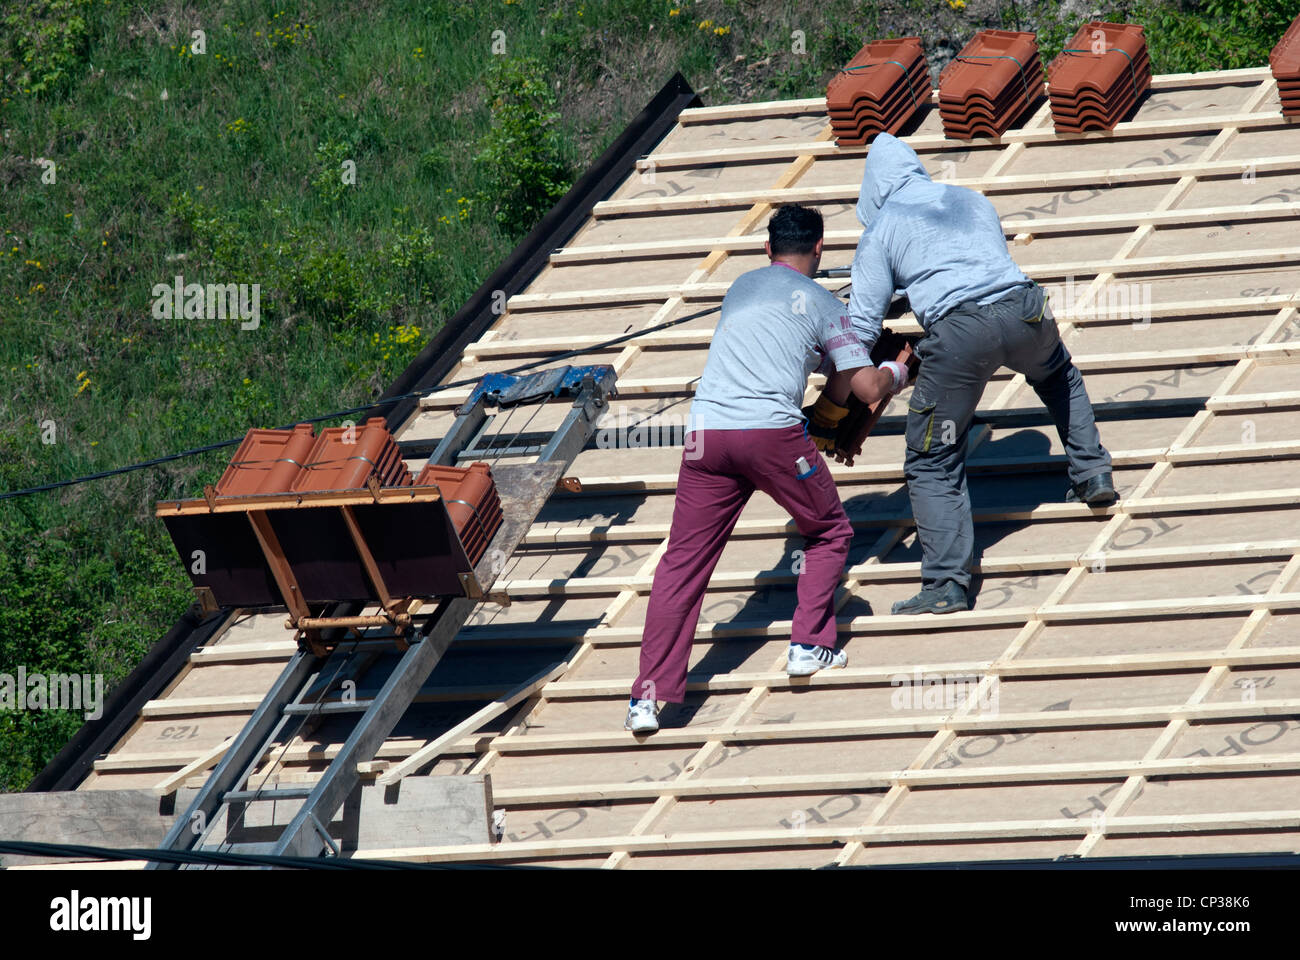 Workers on roof renewal - Stock Image